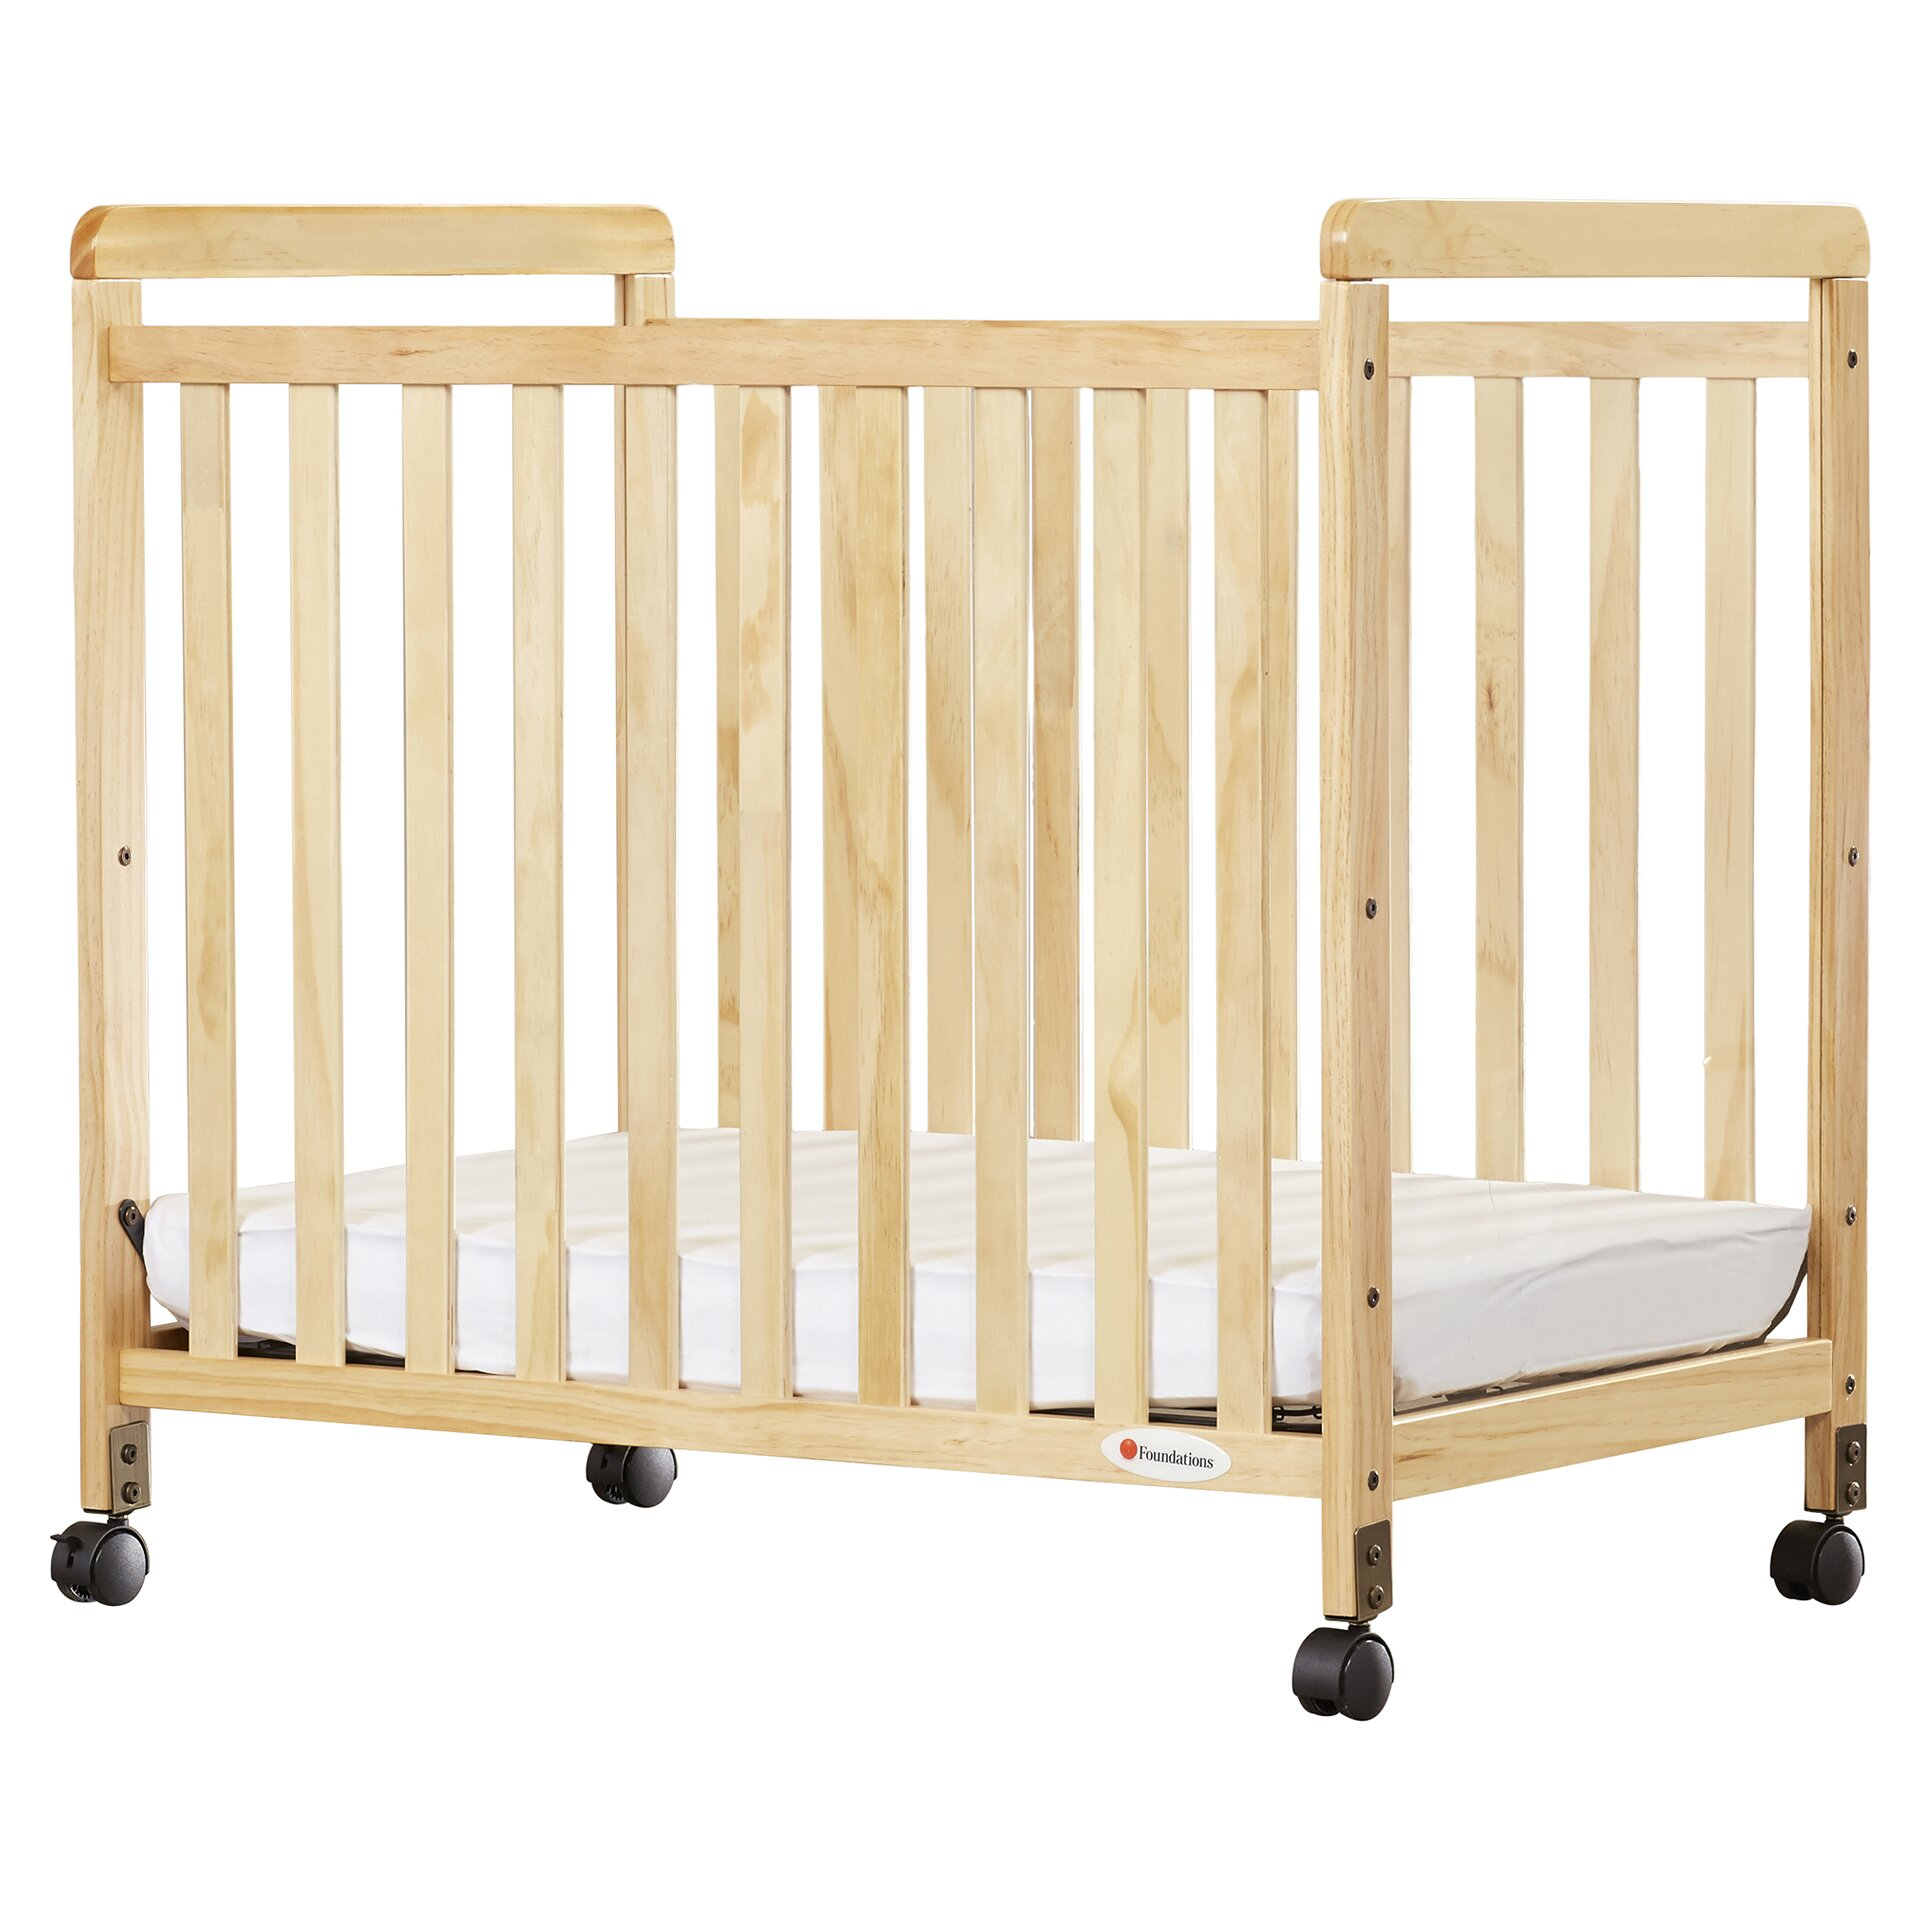 Viv Rae Sawyer pact Size Clearview Convertible Crib